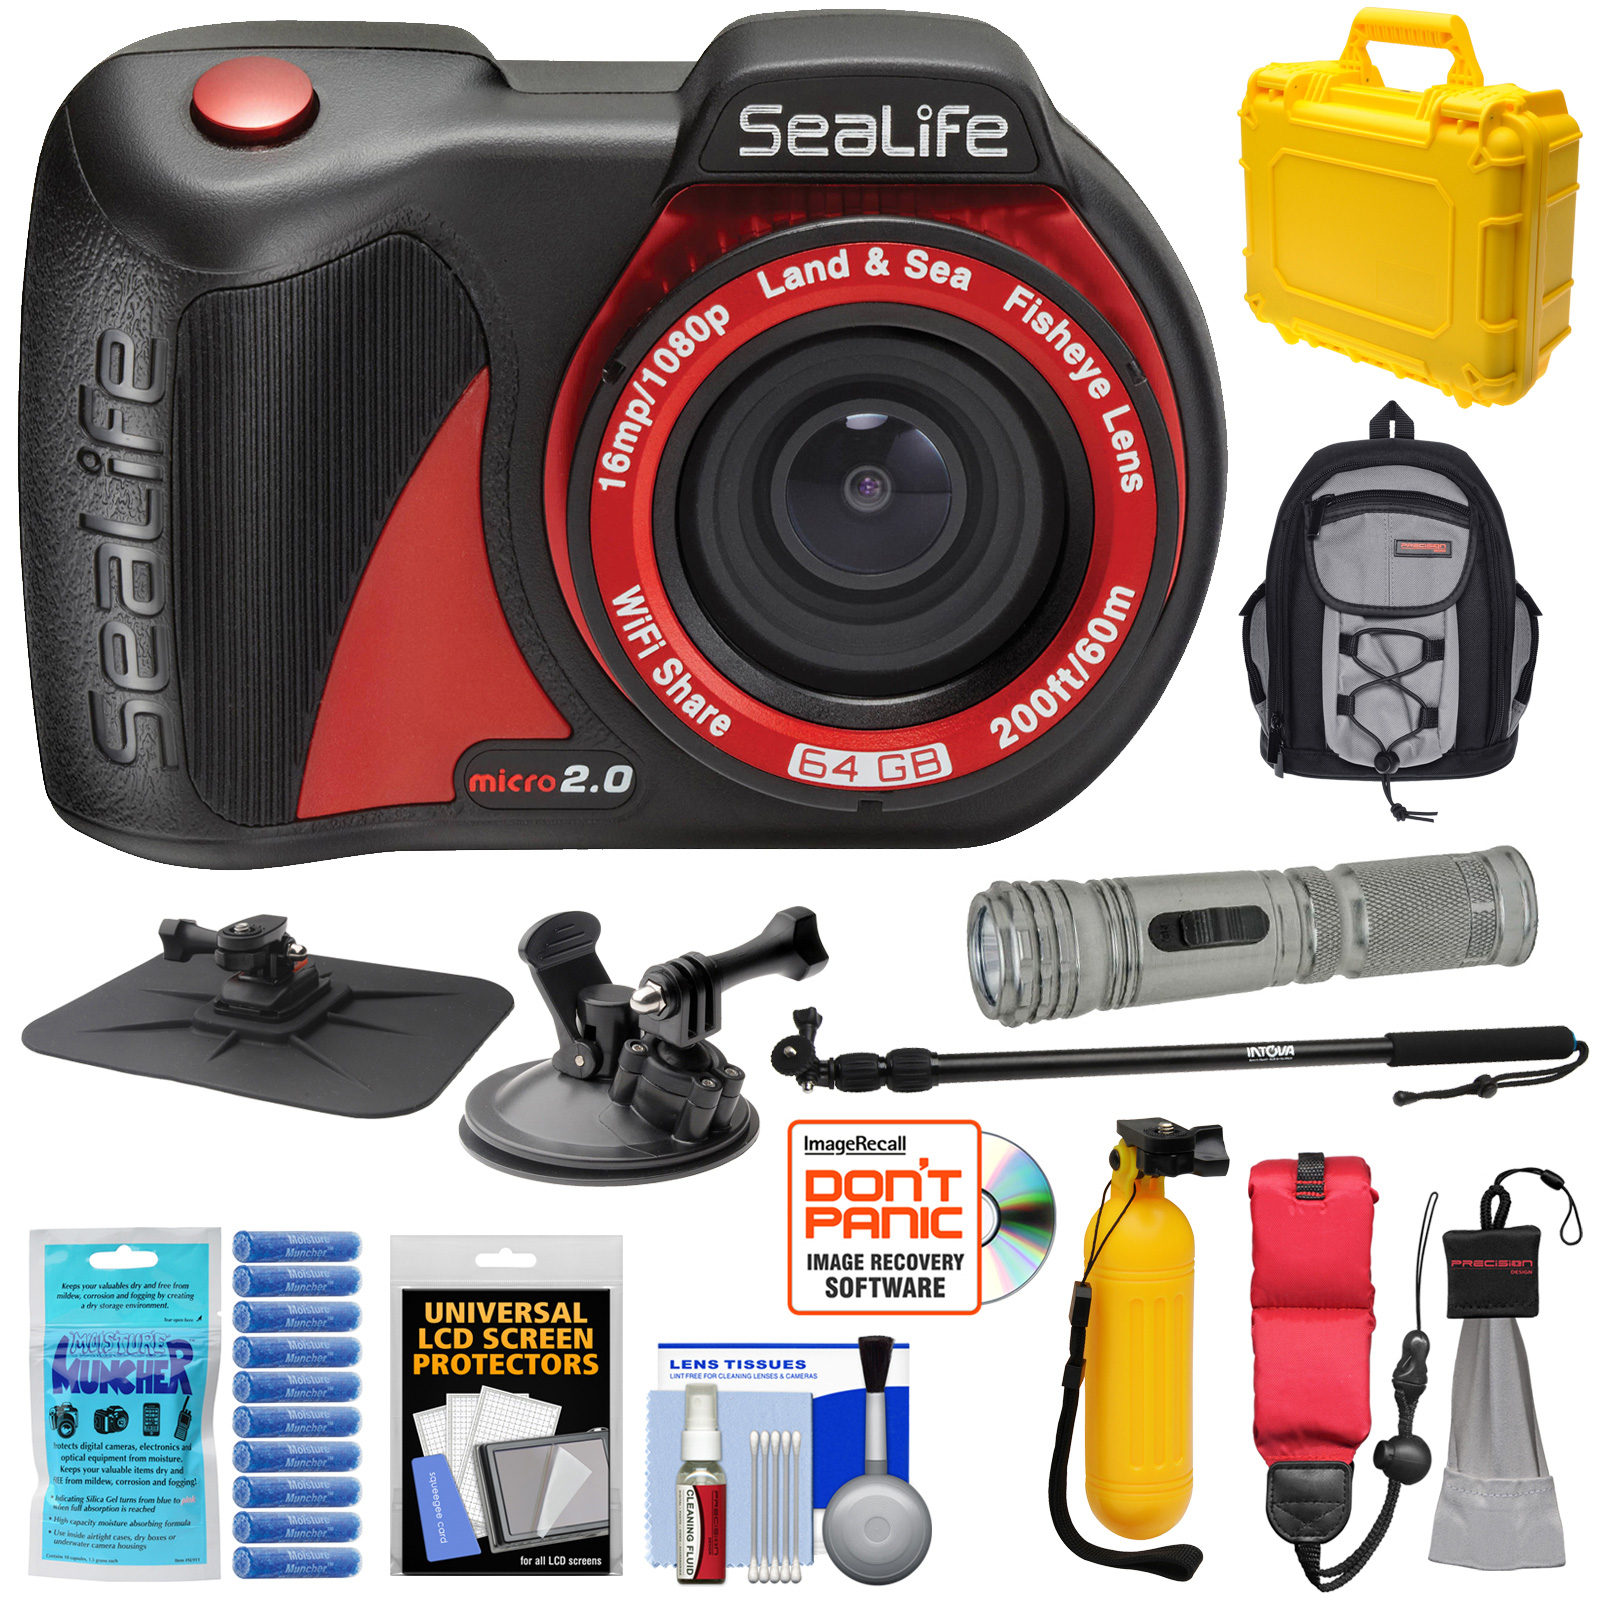 SeaLife Micro 2.0 64GB Wi-Fi Underwater Digital Camera with Suction Cup & Buoy Mount + Extension Pole + LED Torch + Backpack + Hard Case + Kit